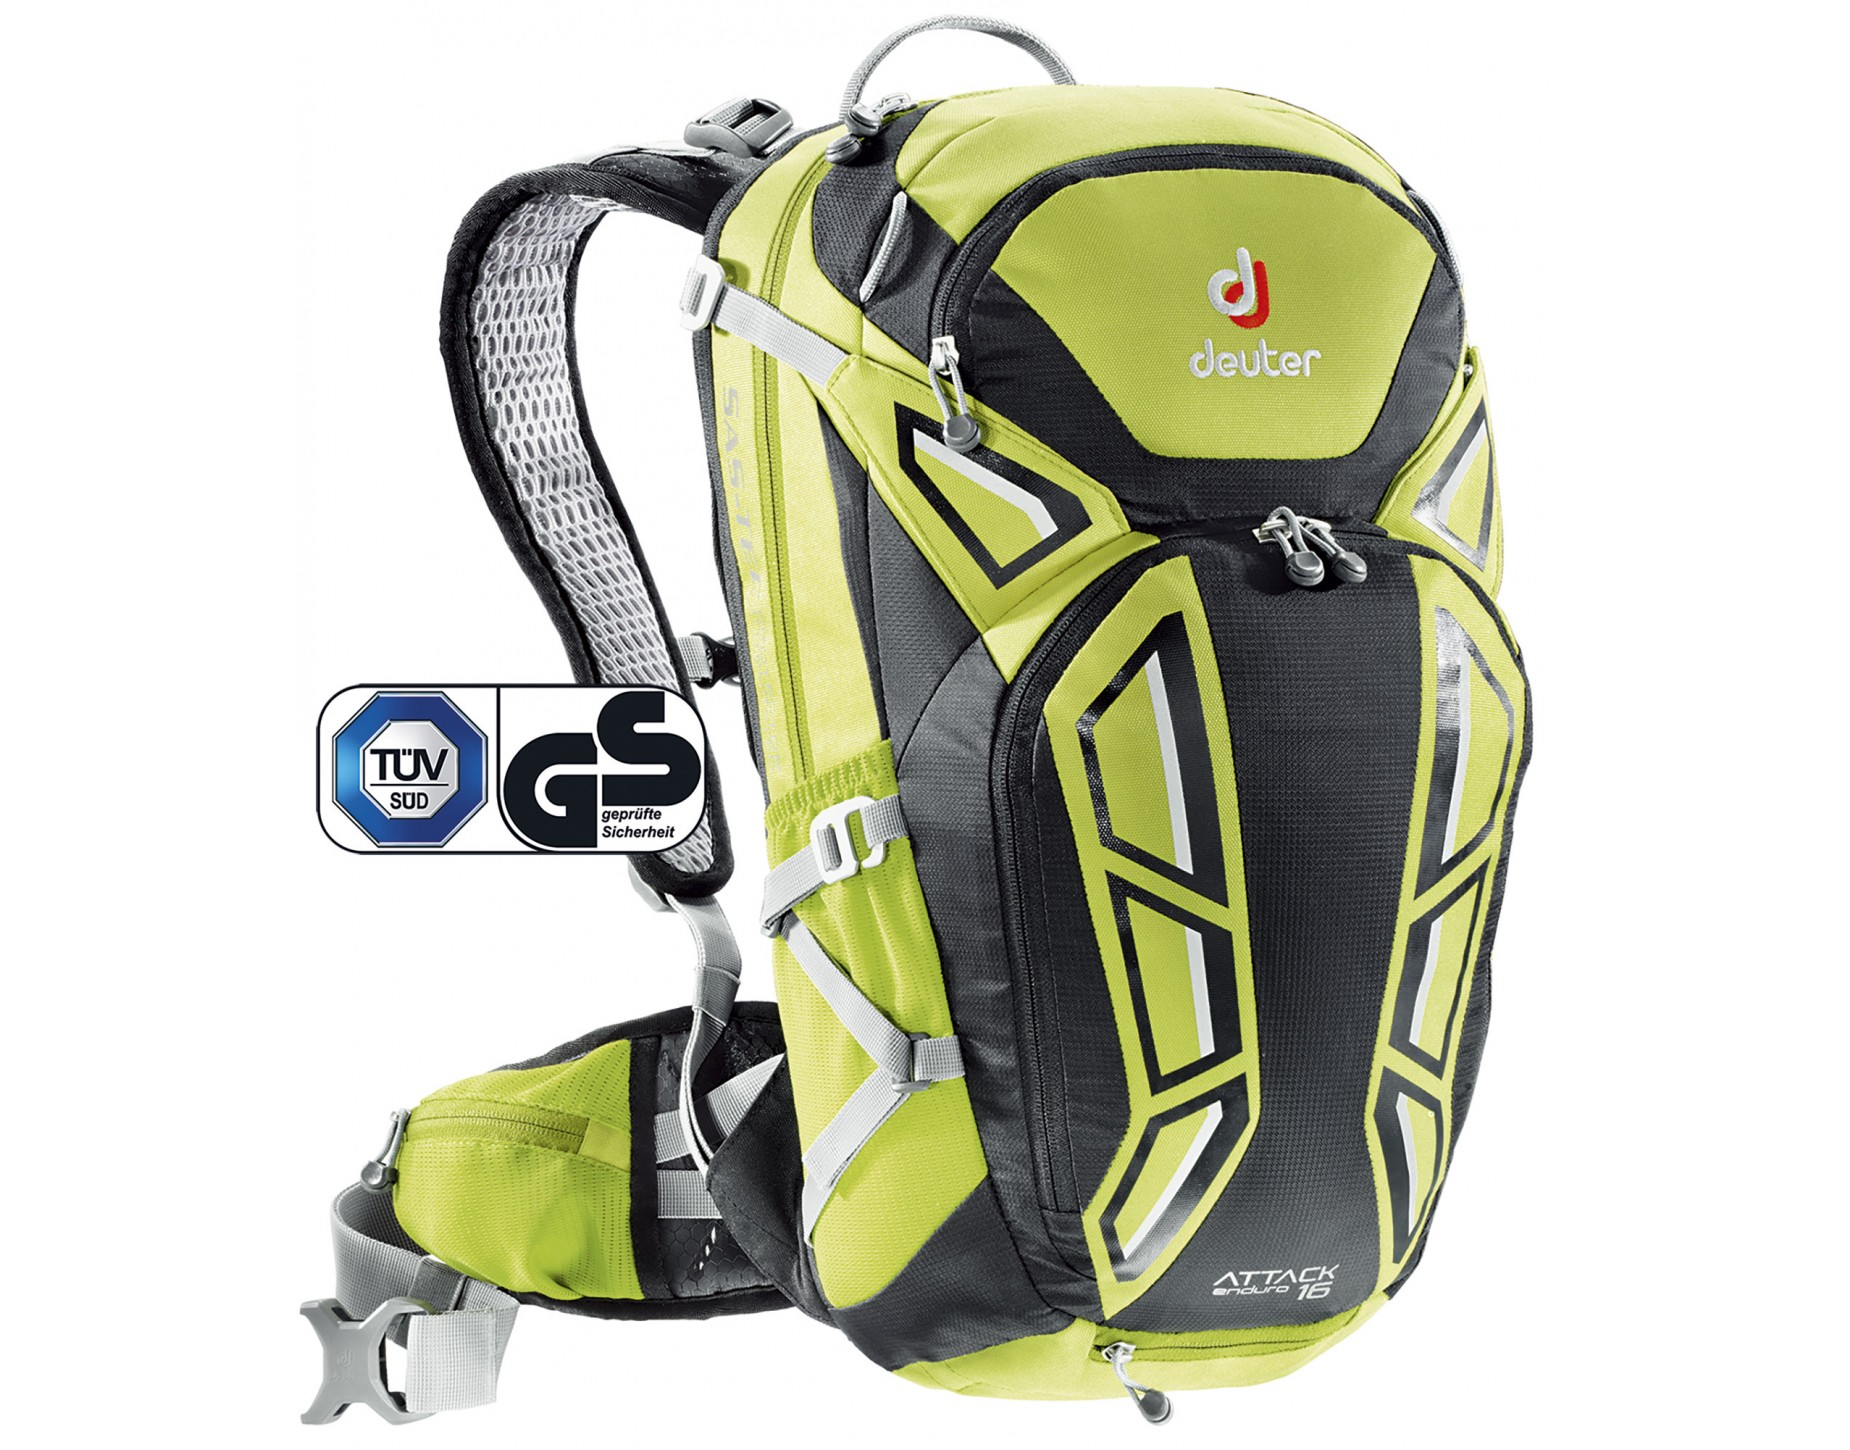 deuter attack enduro 16 rucksack genau was du brauchst. Black Bedroom Furniture Sets. Home Design Ideas